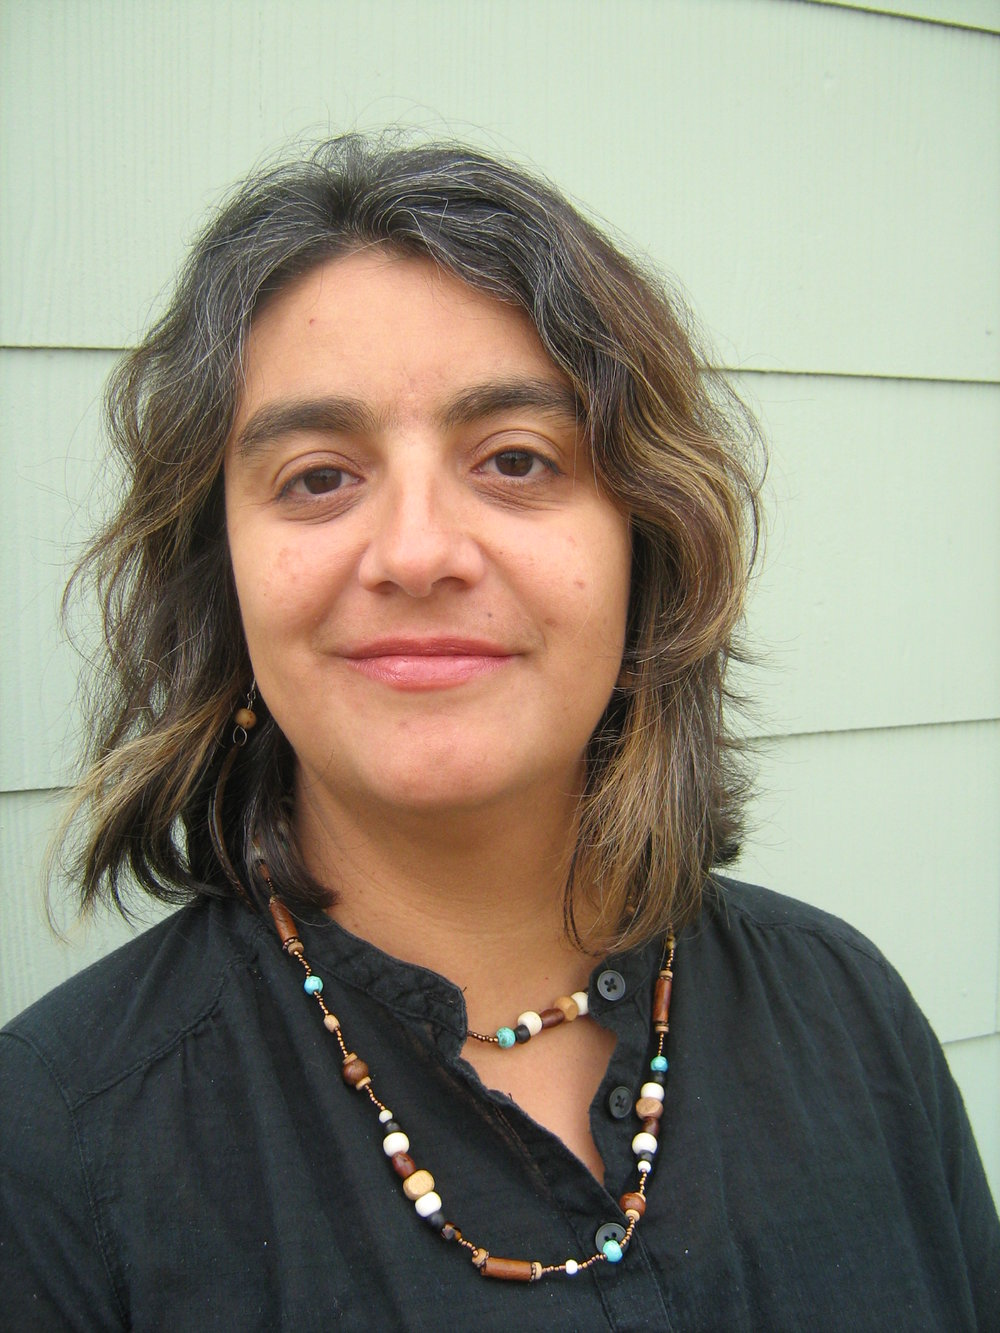 Acclaimed food and drink anthropologist and speaker, Claudia Alarcon